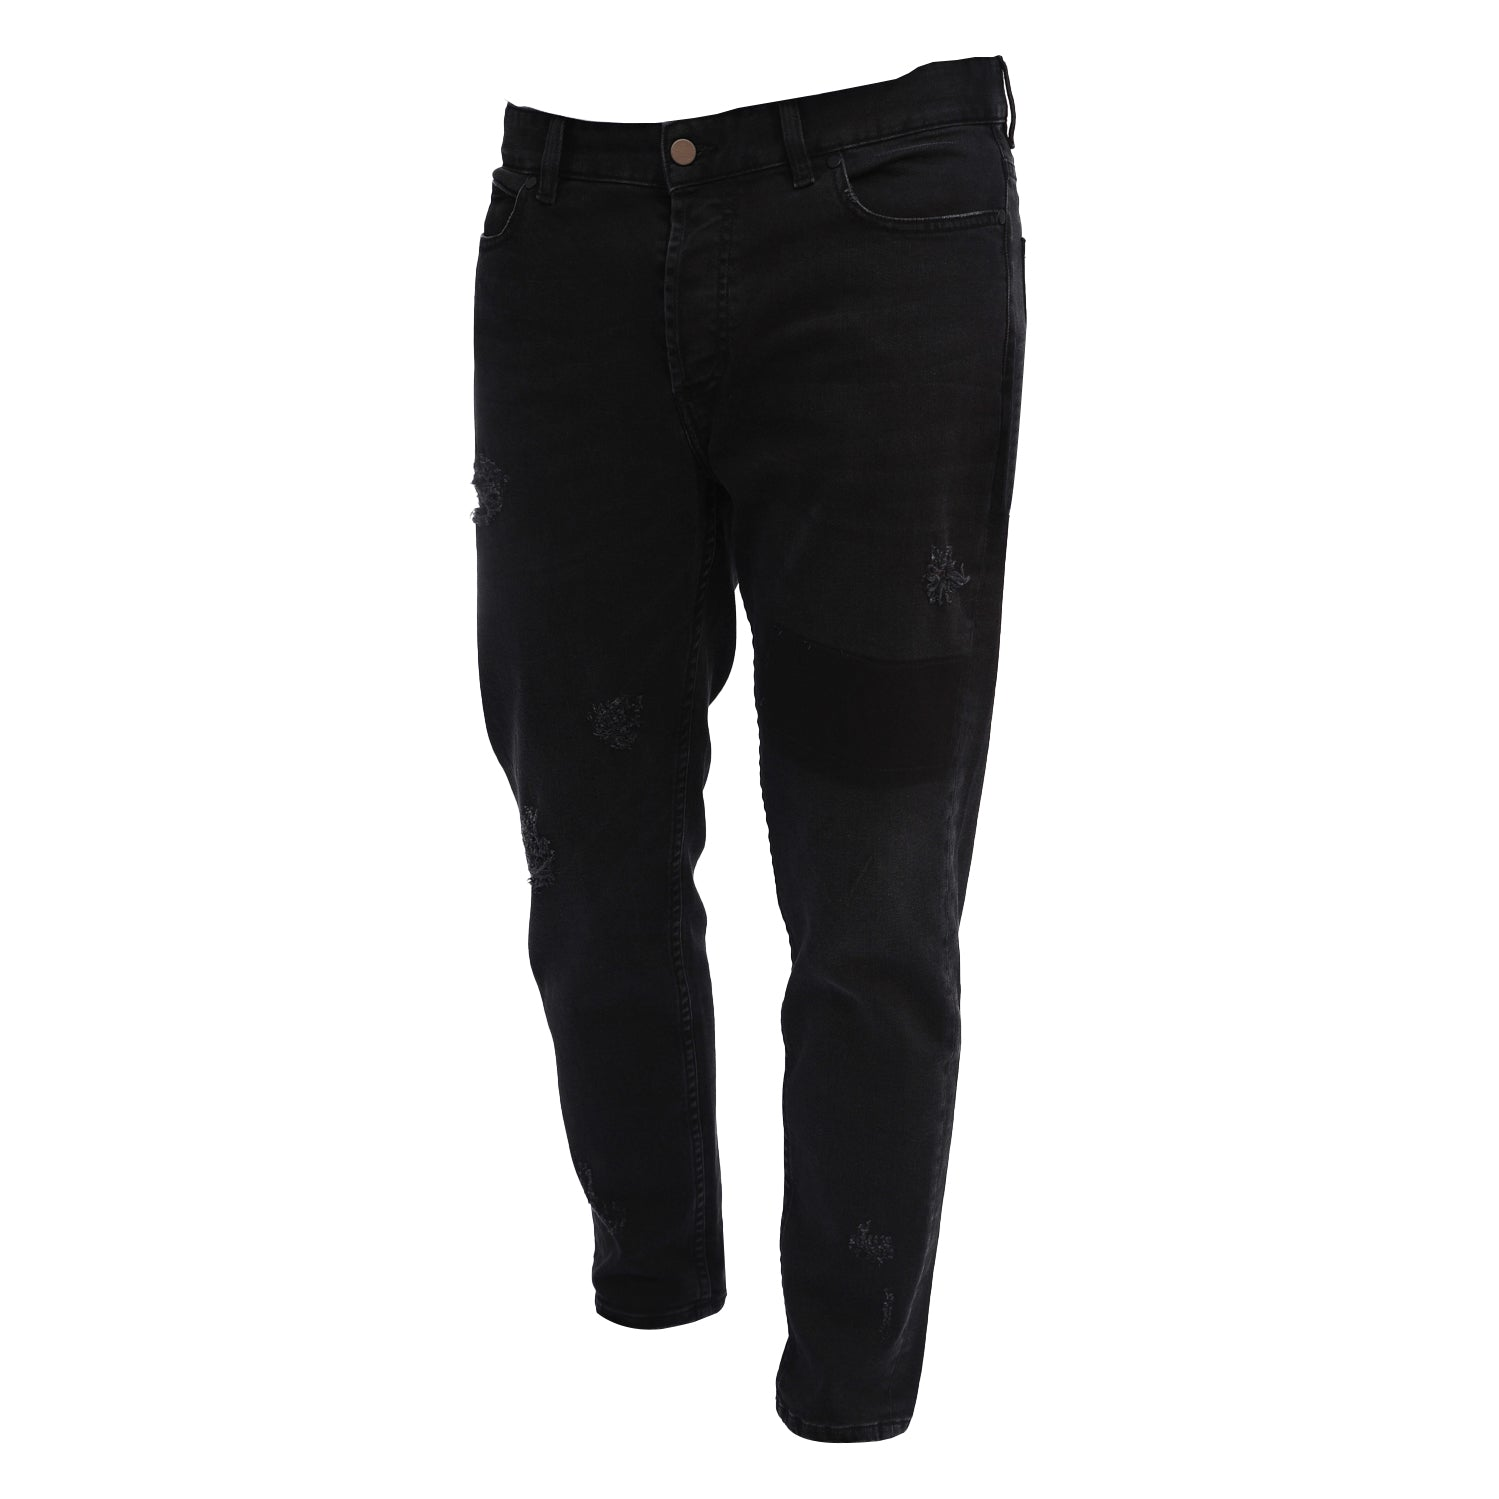 PANTS 5 POCKETS STONE BLACK